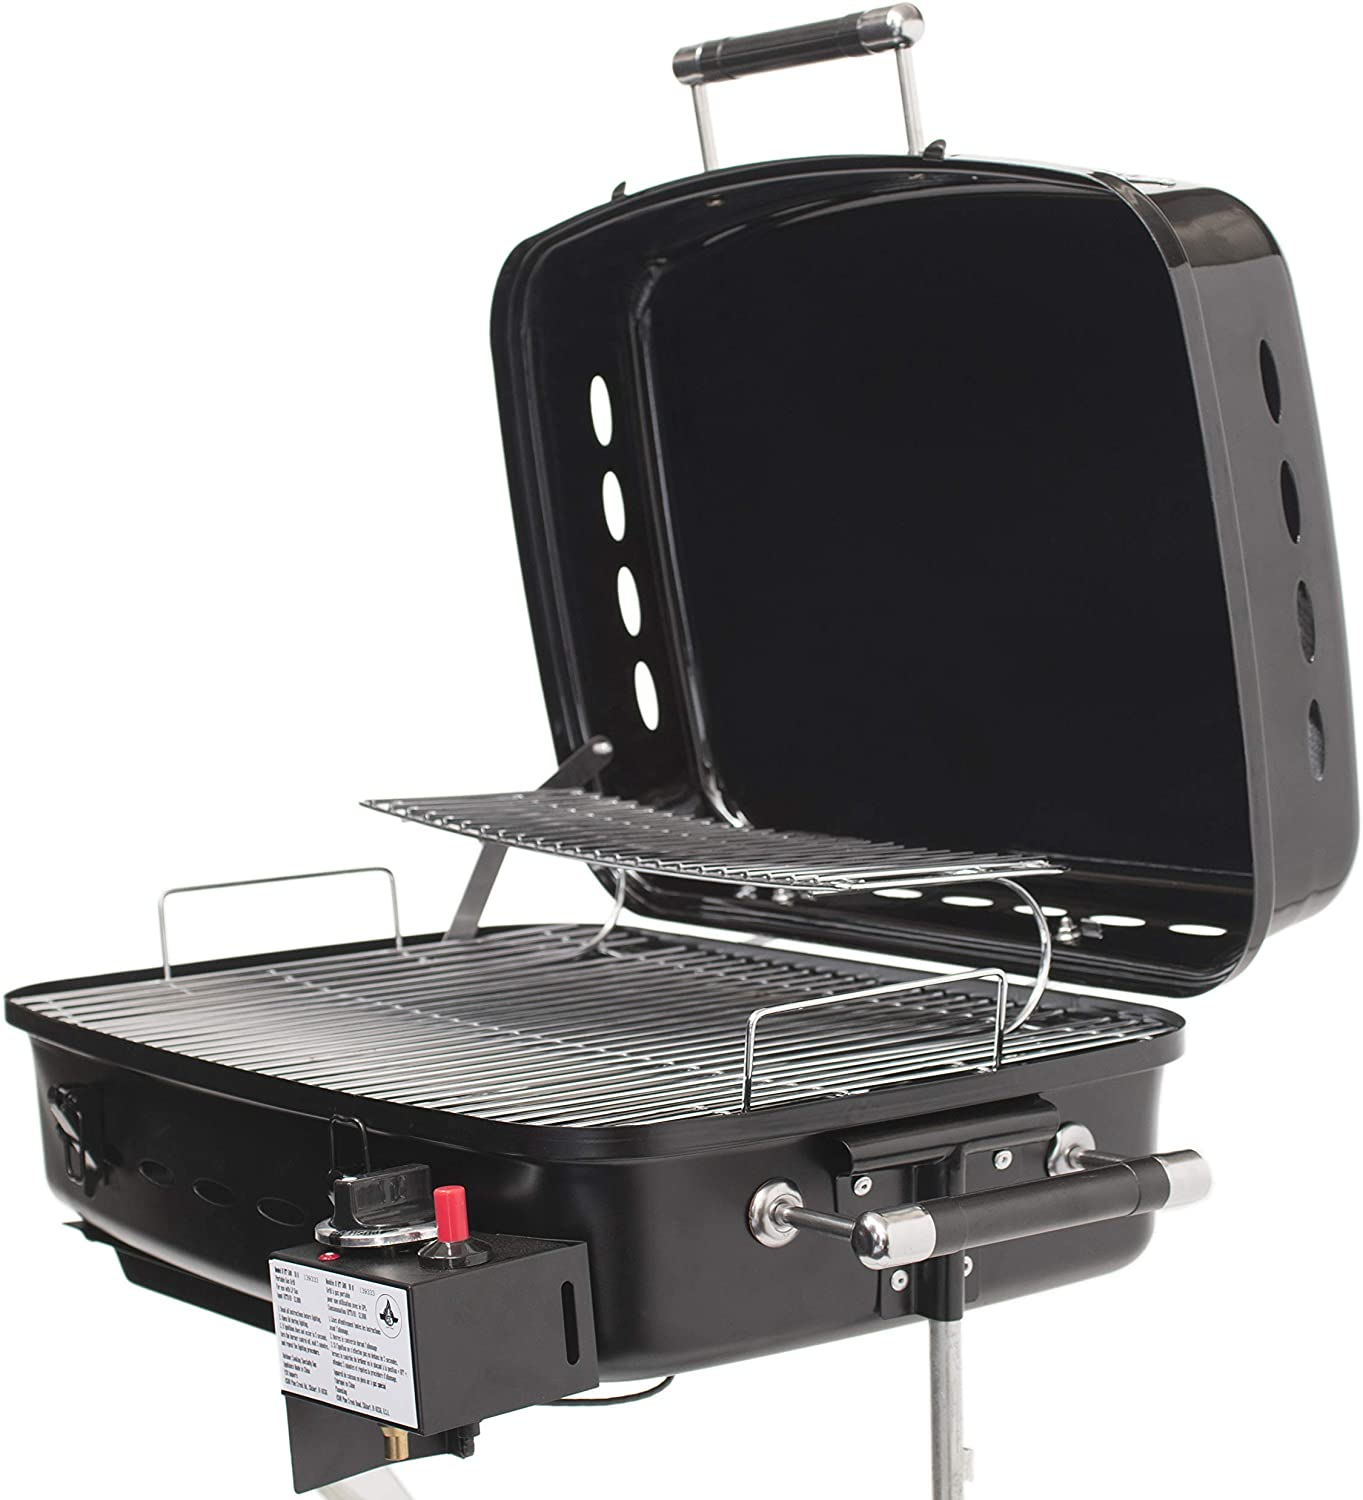 Flame King RV Or Trailer Mounted BBQ Gas Grill